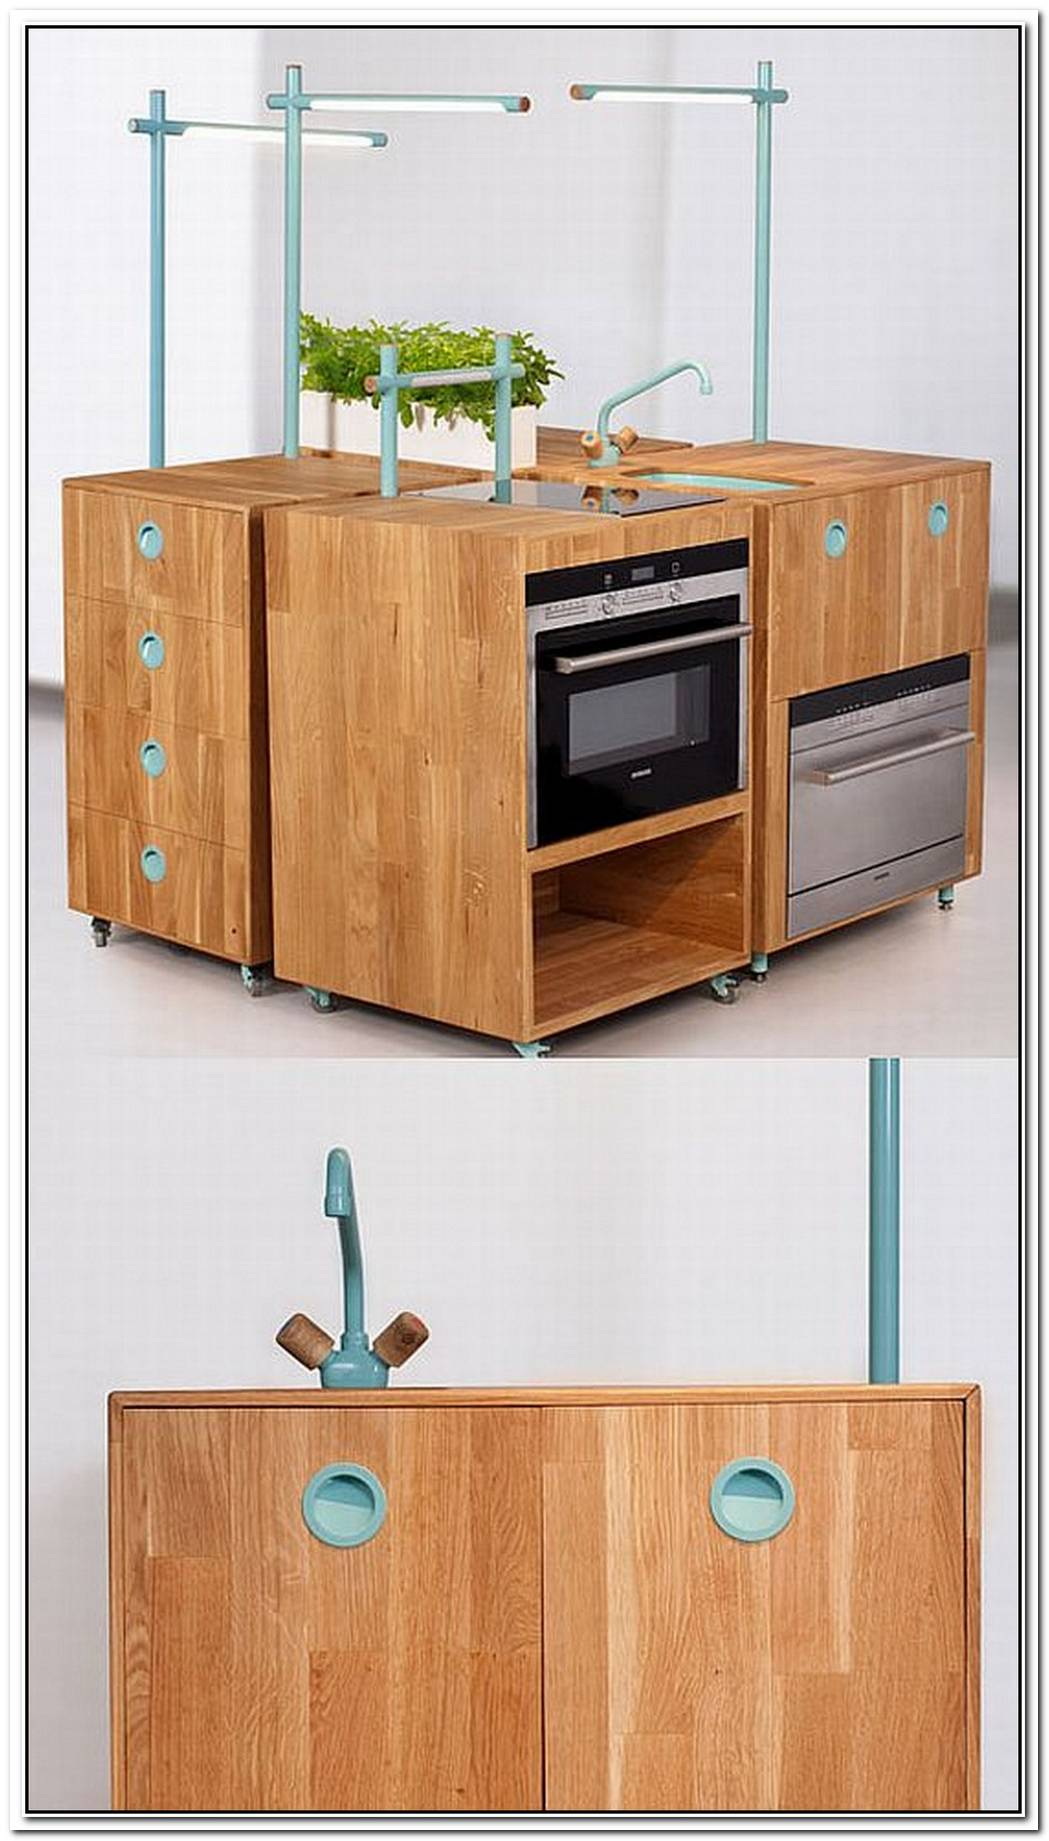 Modern Modular Recycled Kitchen Furniture Reduces Waste